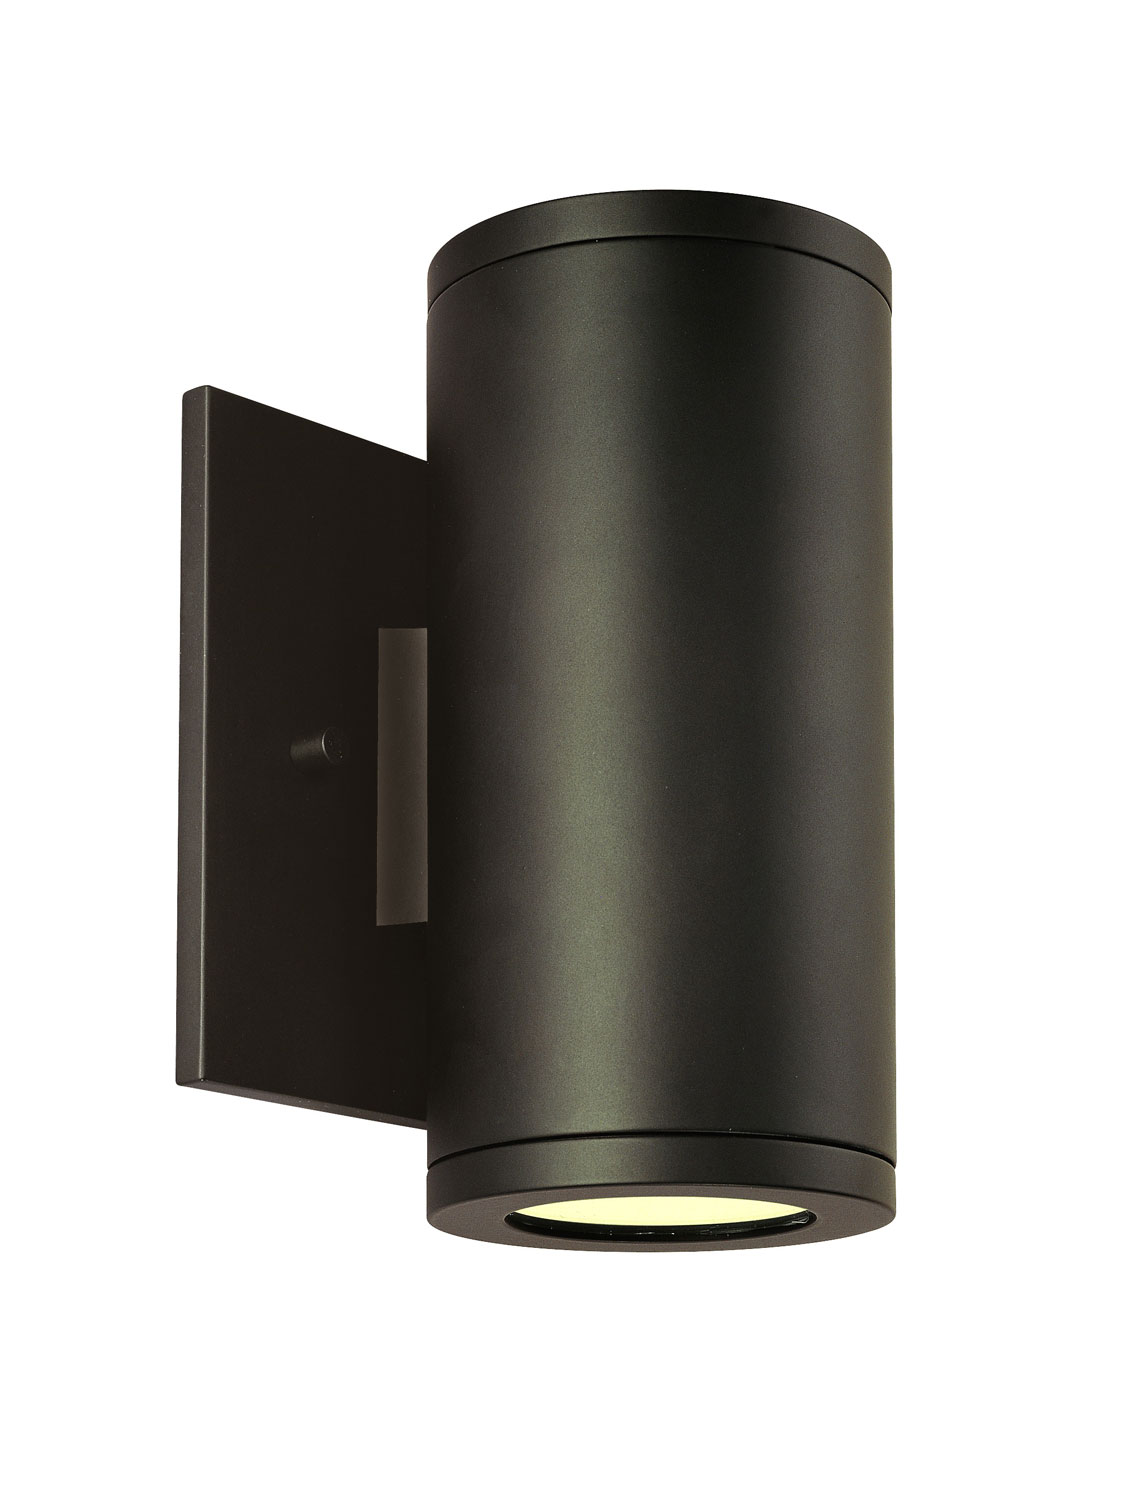 Add Decor to Your Outdoor Using Wall Mounted Light Fixtures